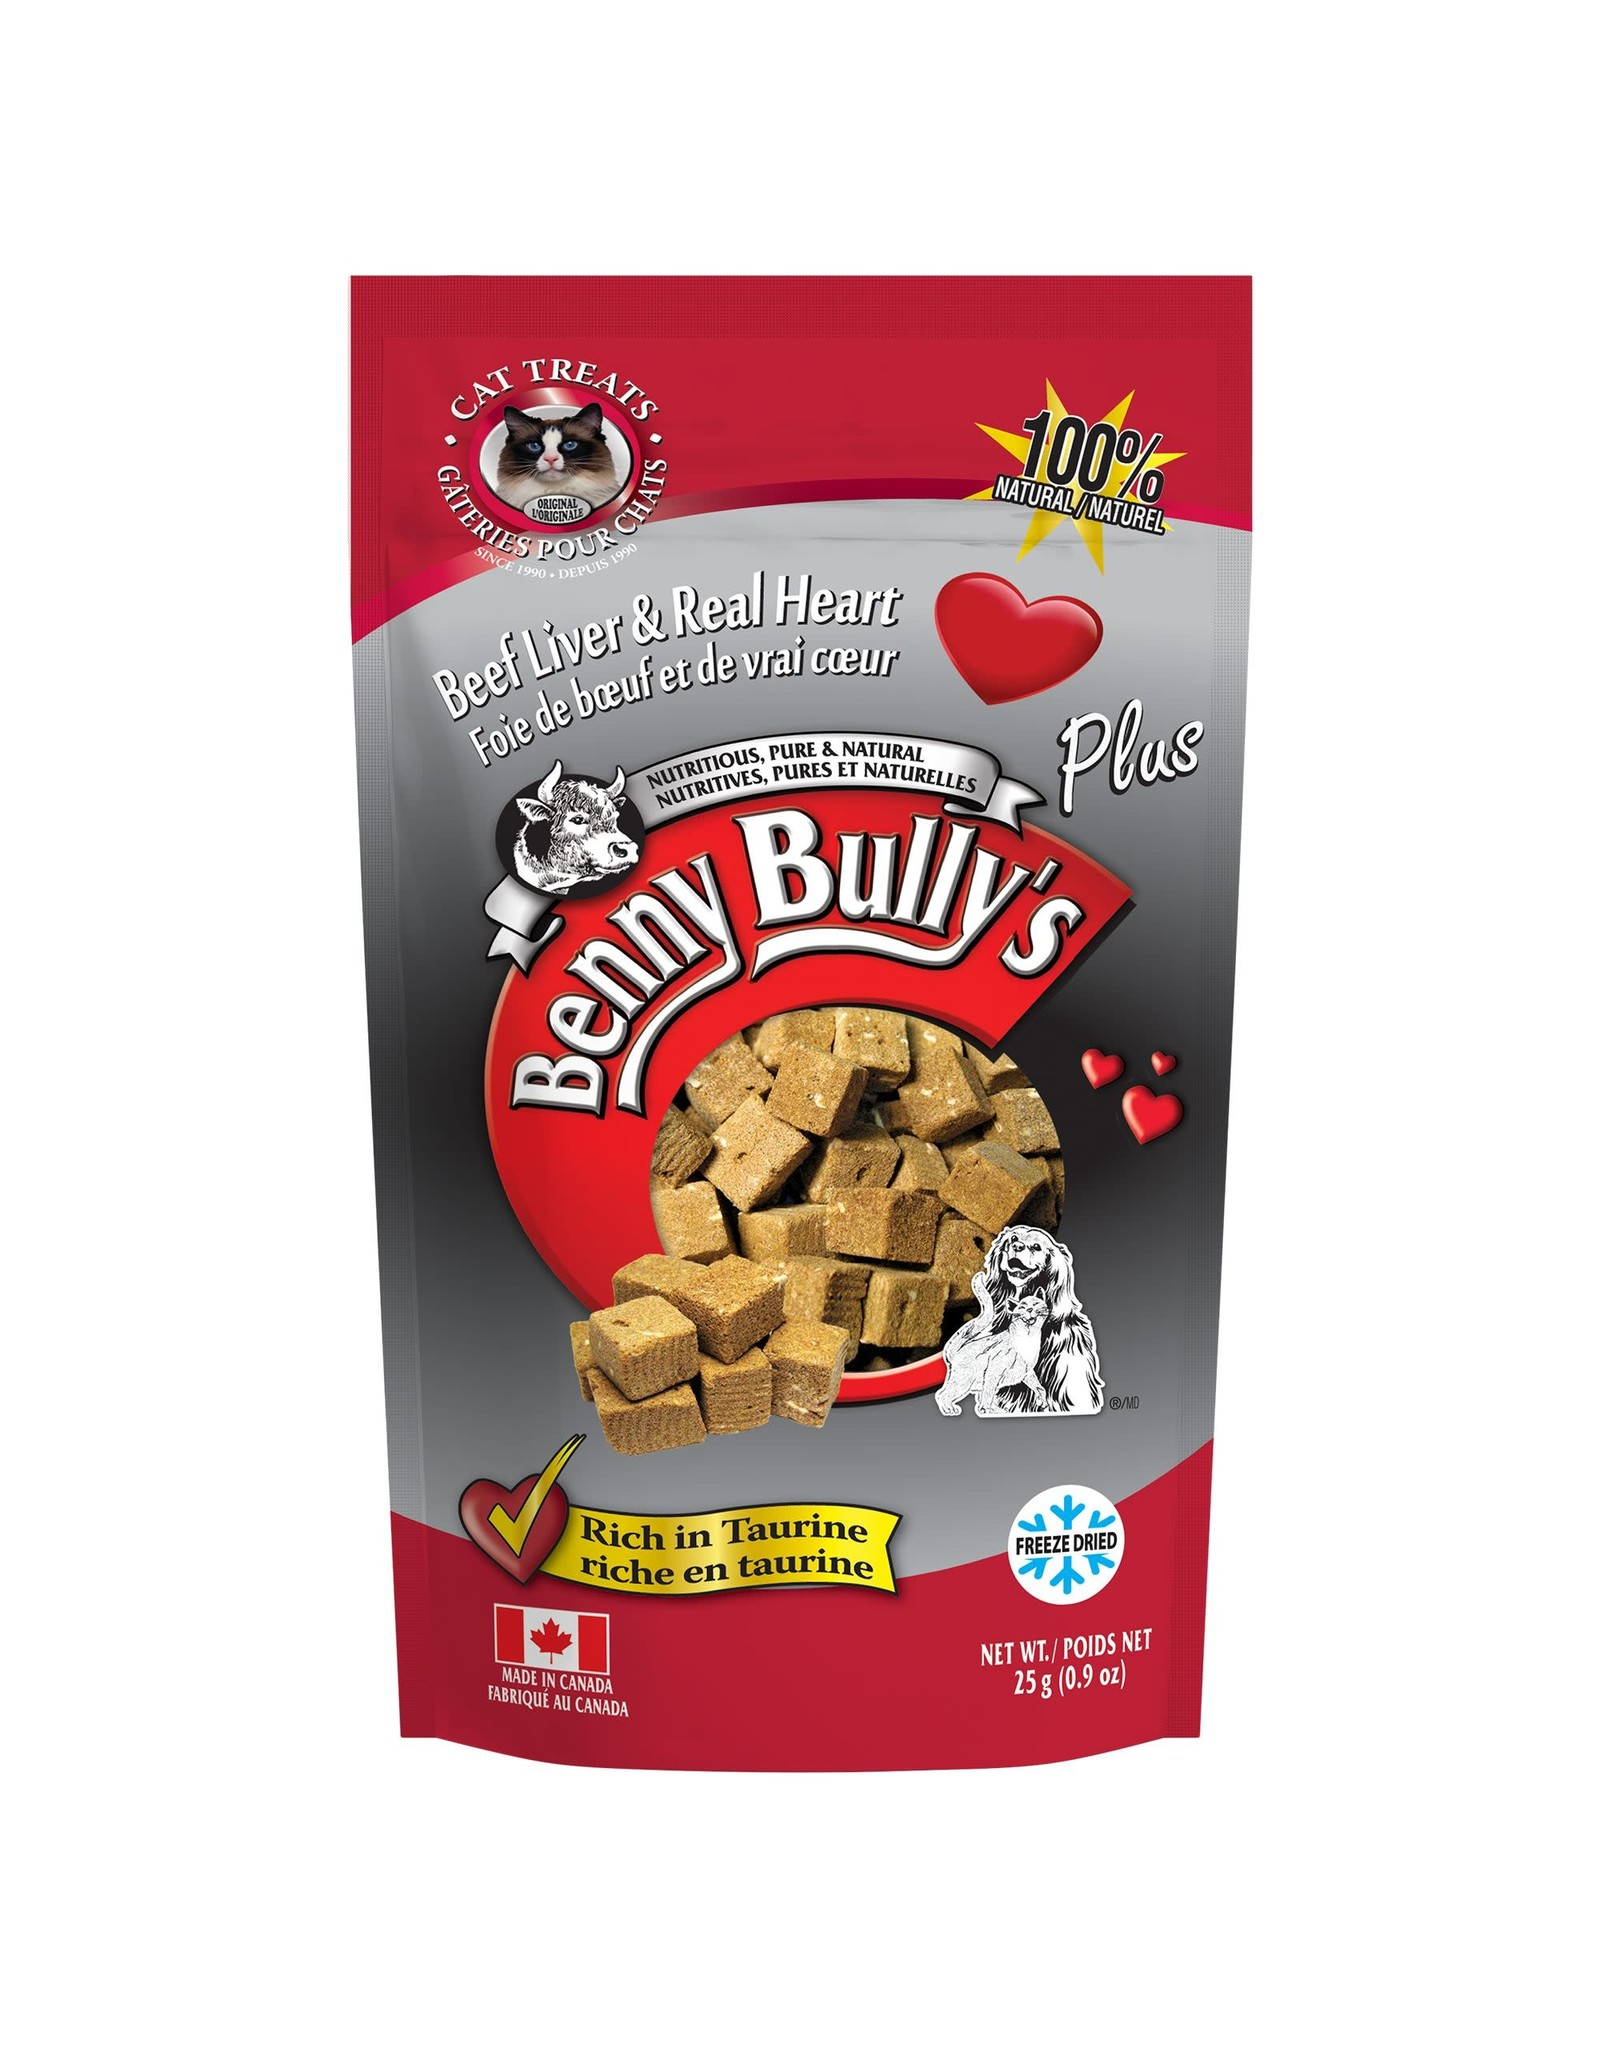 Benny Bully's Benny Bully's Cat Beef Liver Heart 25g